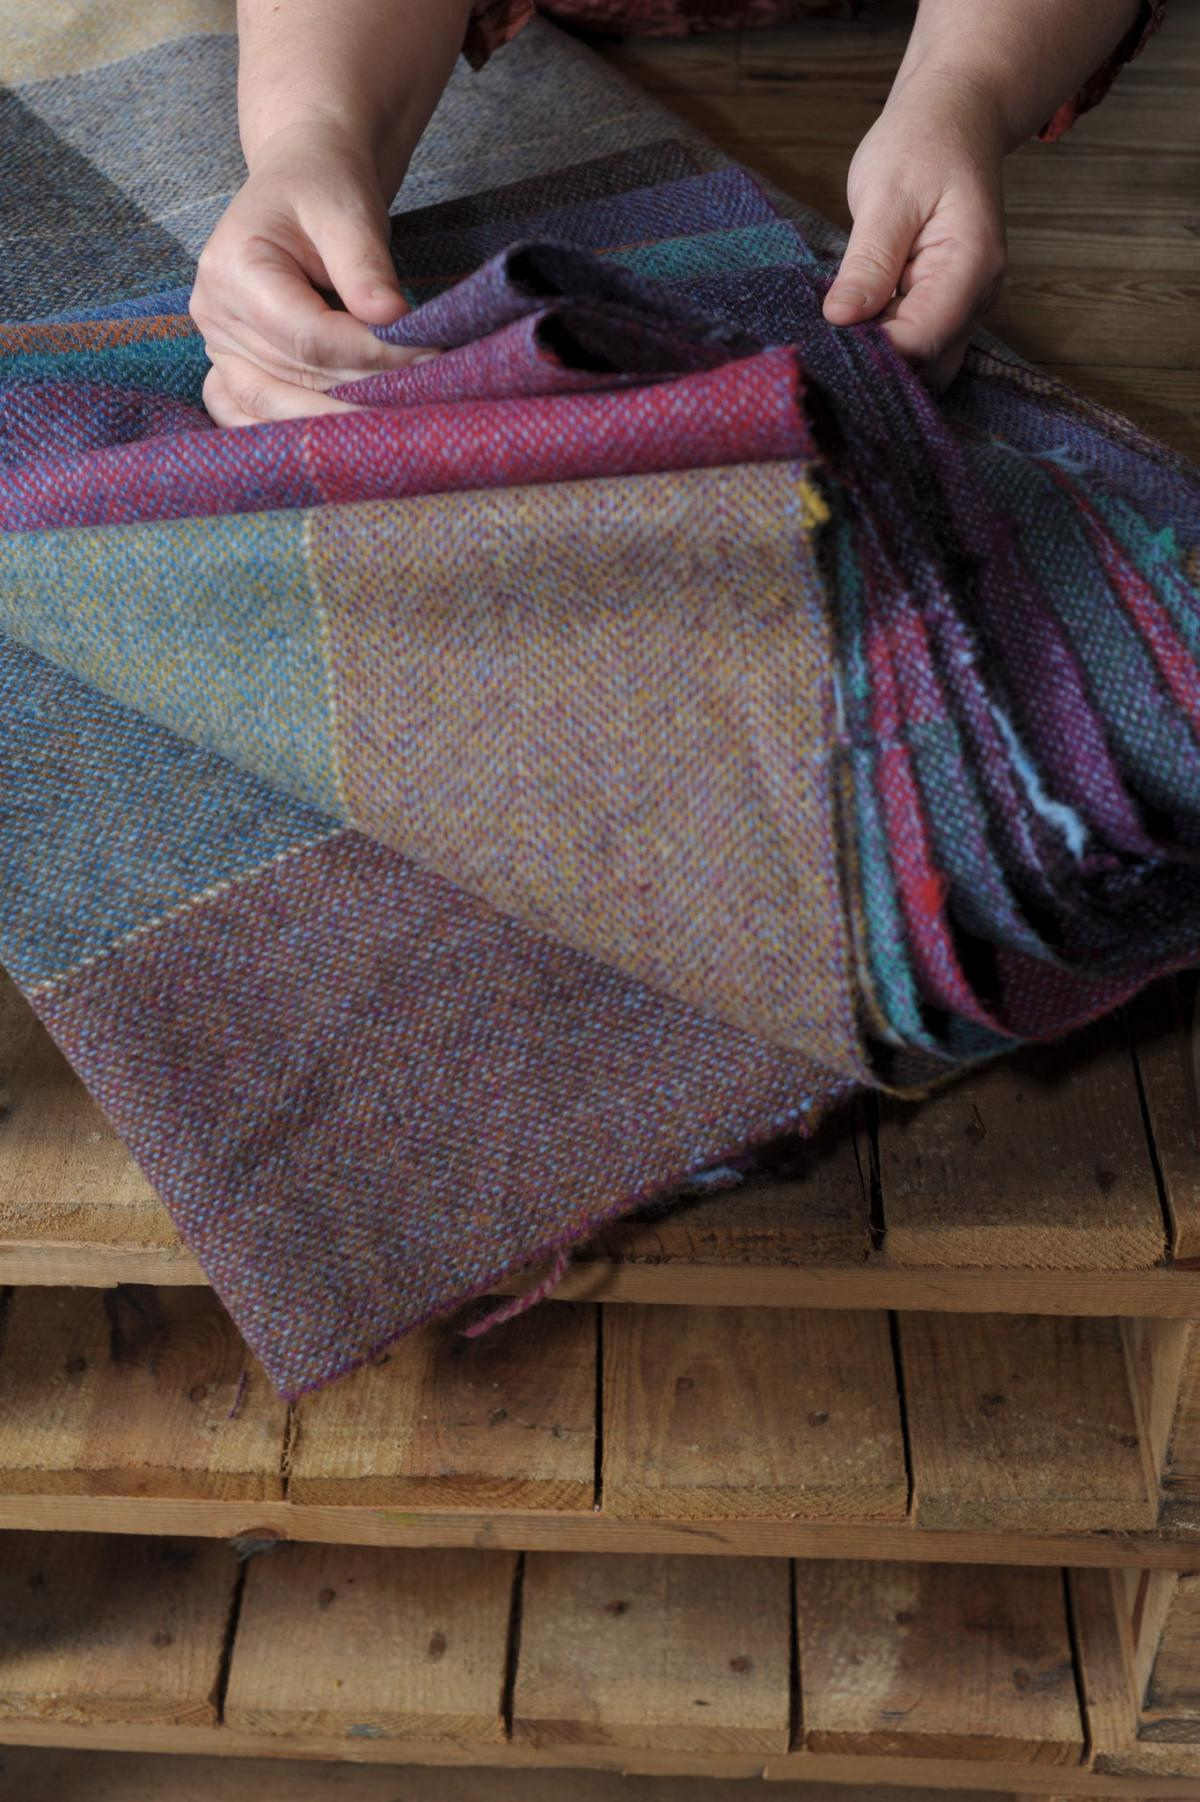 9850248cde955 Harris Tweed goes from draughty loom sheds to being taught in ...